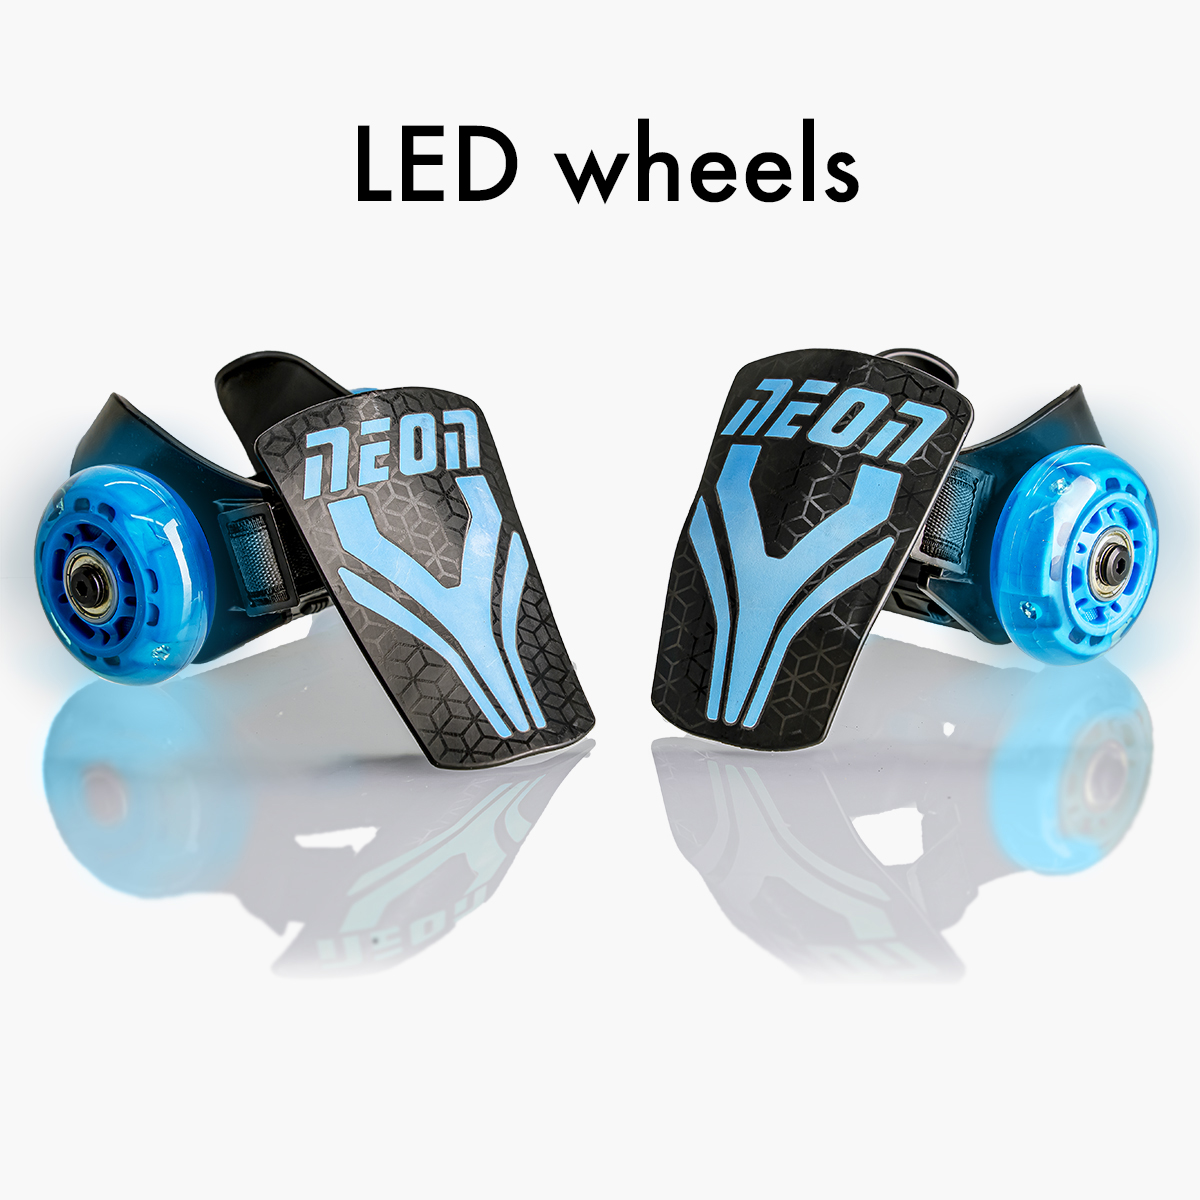 LED light-up wheels (no batteries needed)